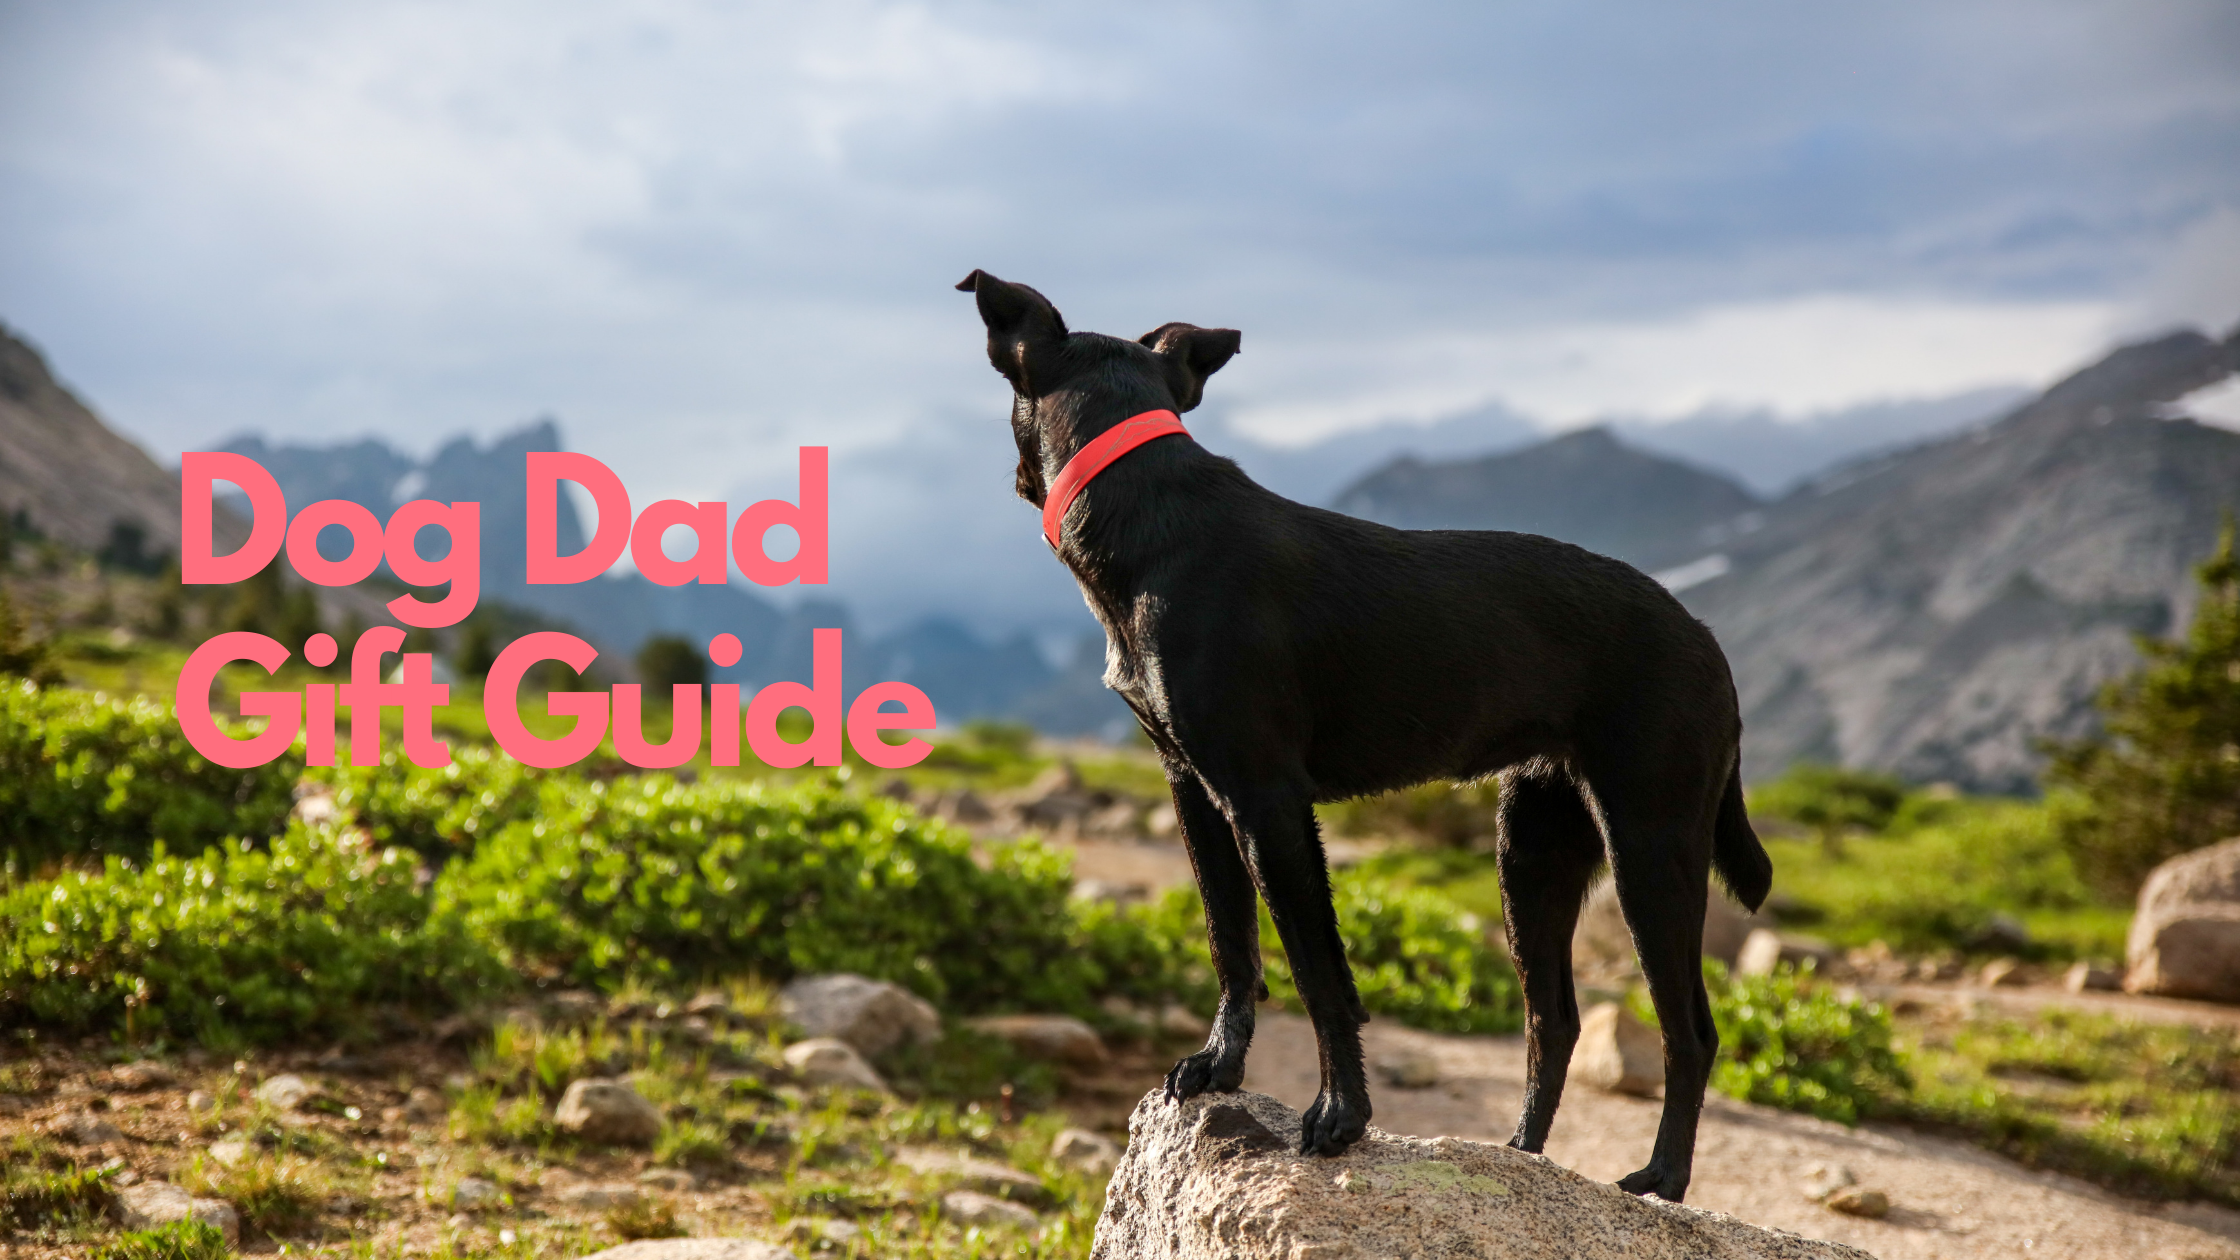 Dog Dad Gift Guide